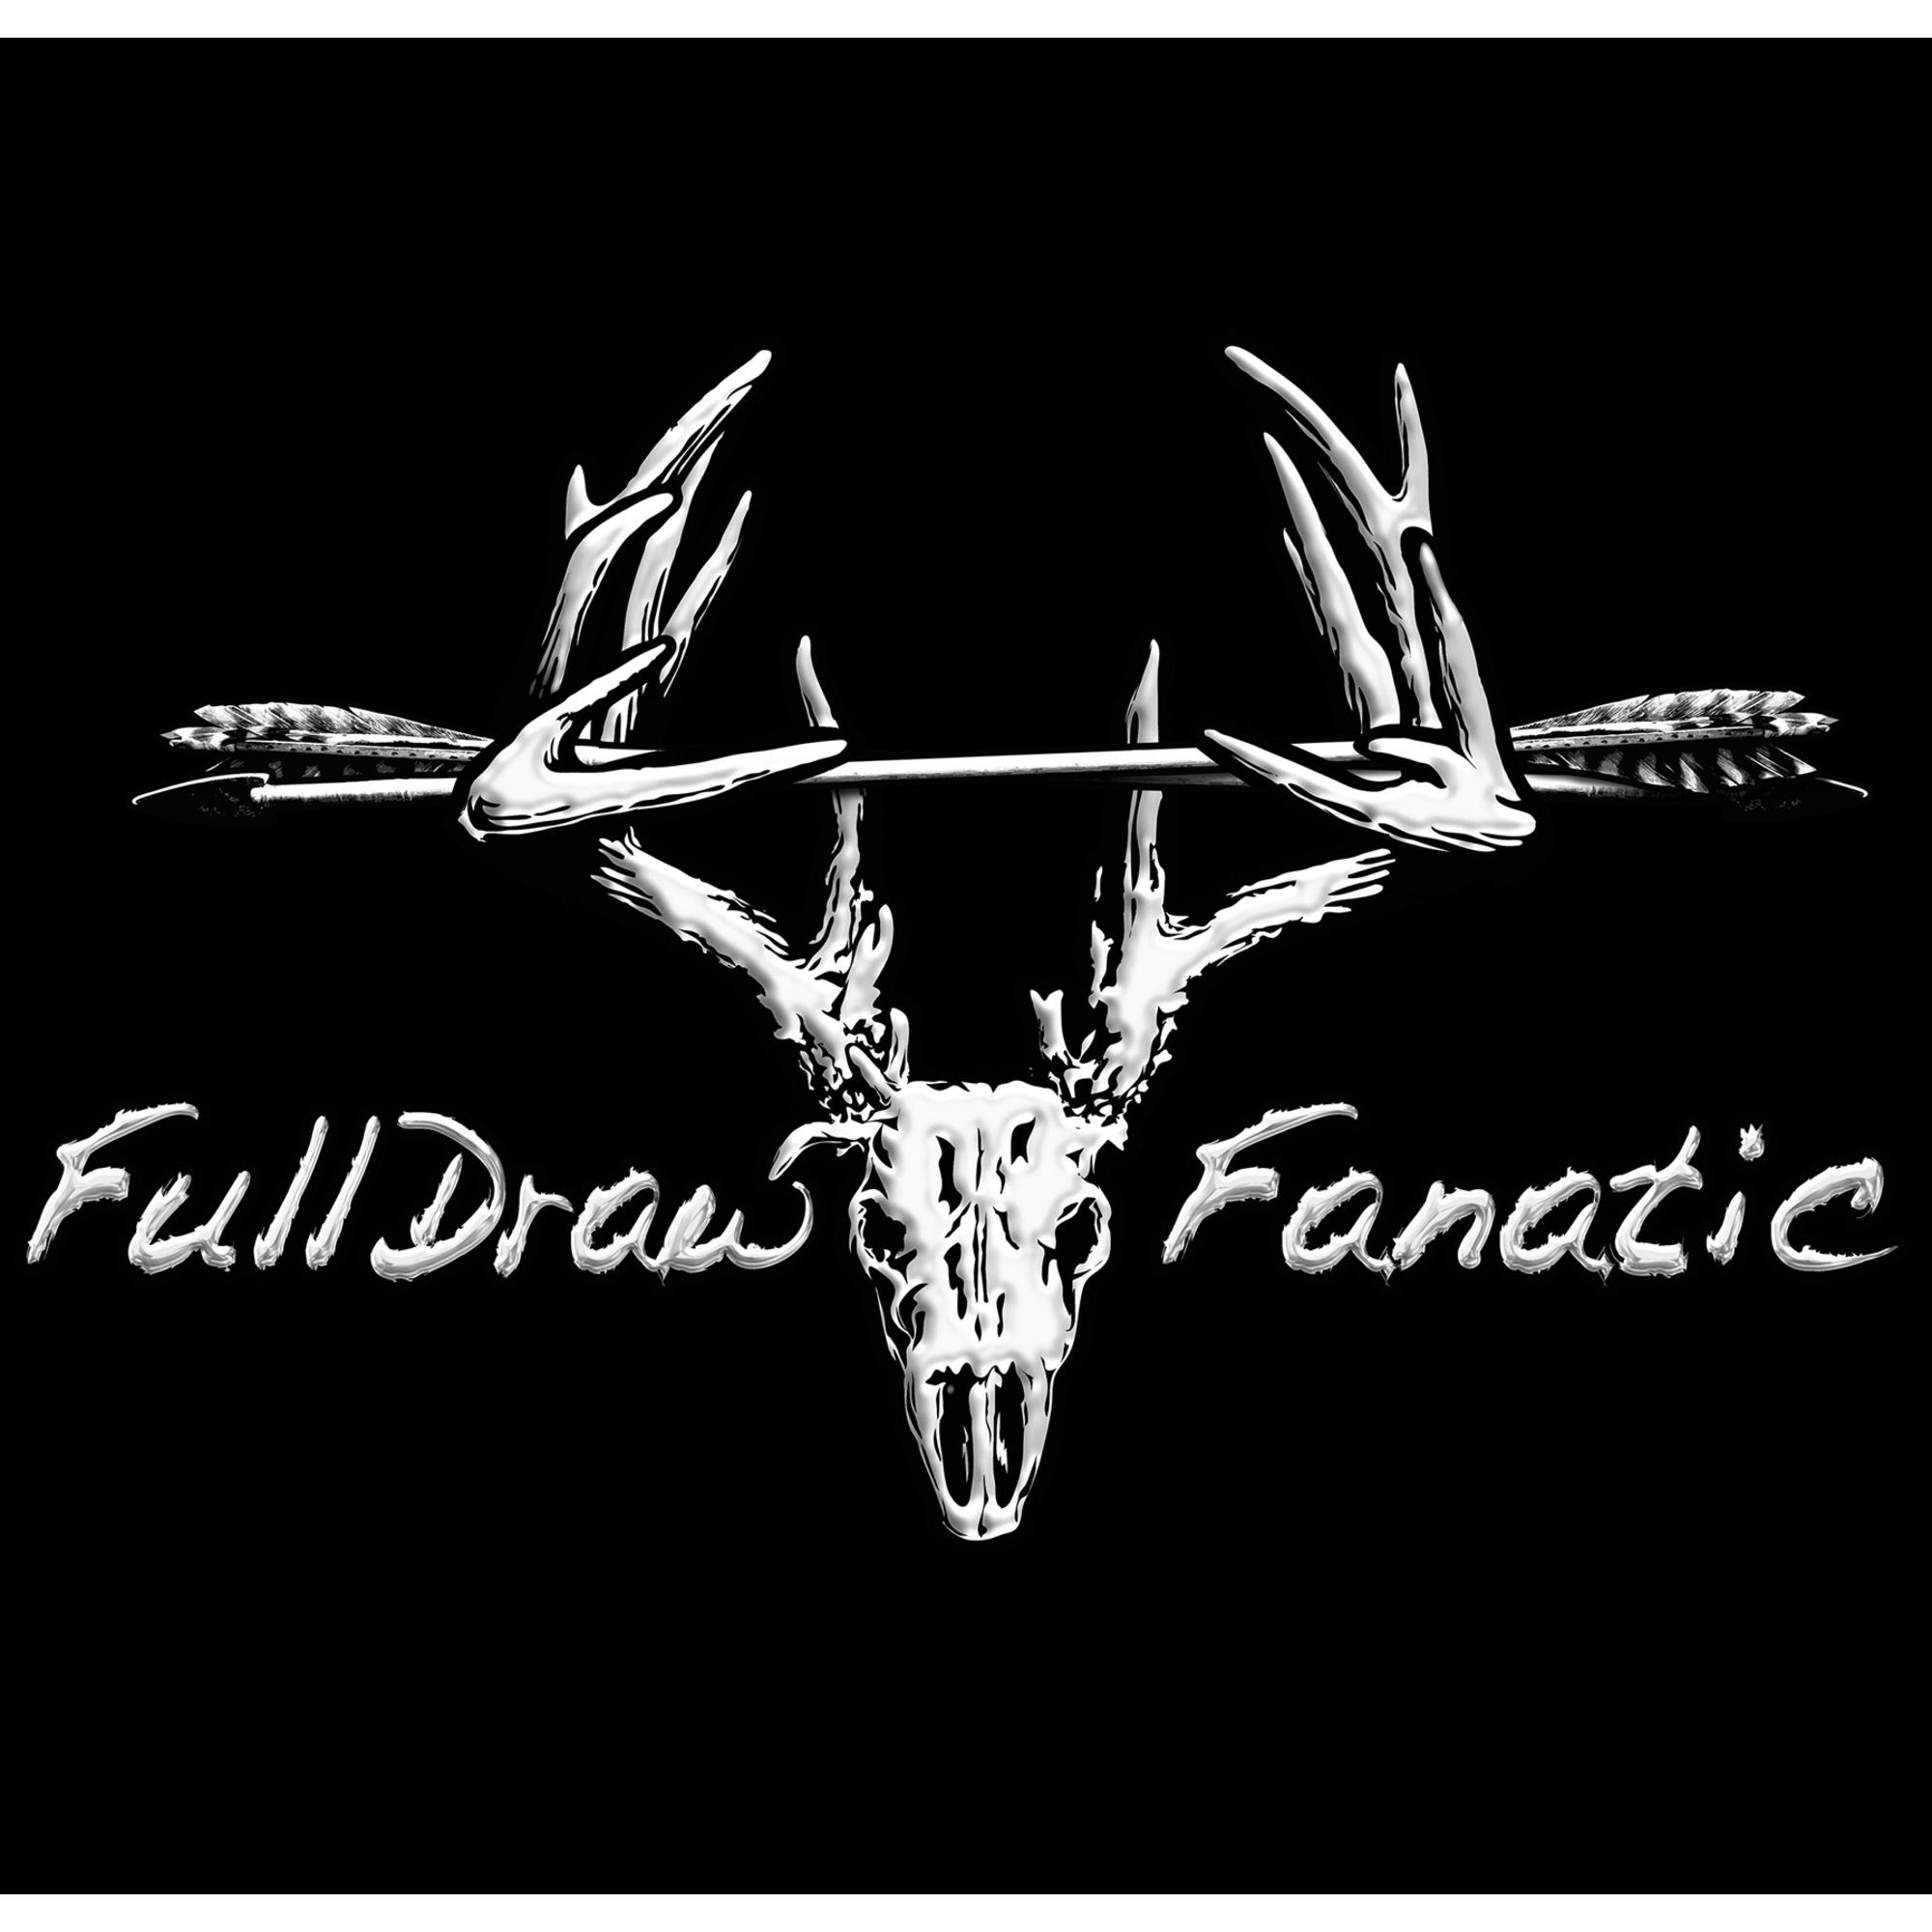 Full Draw Fanatic Decal Legendary Whitetails - Rear window hunting decals for truckstruck decals stickers rear window graphics legendary whitetails